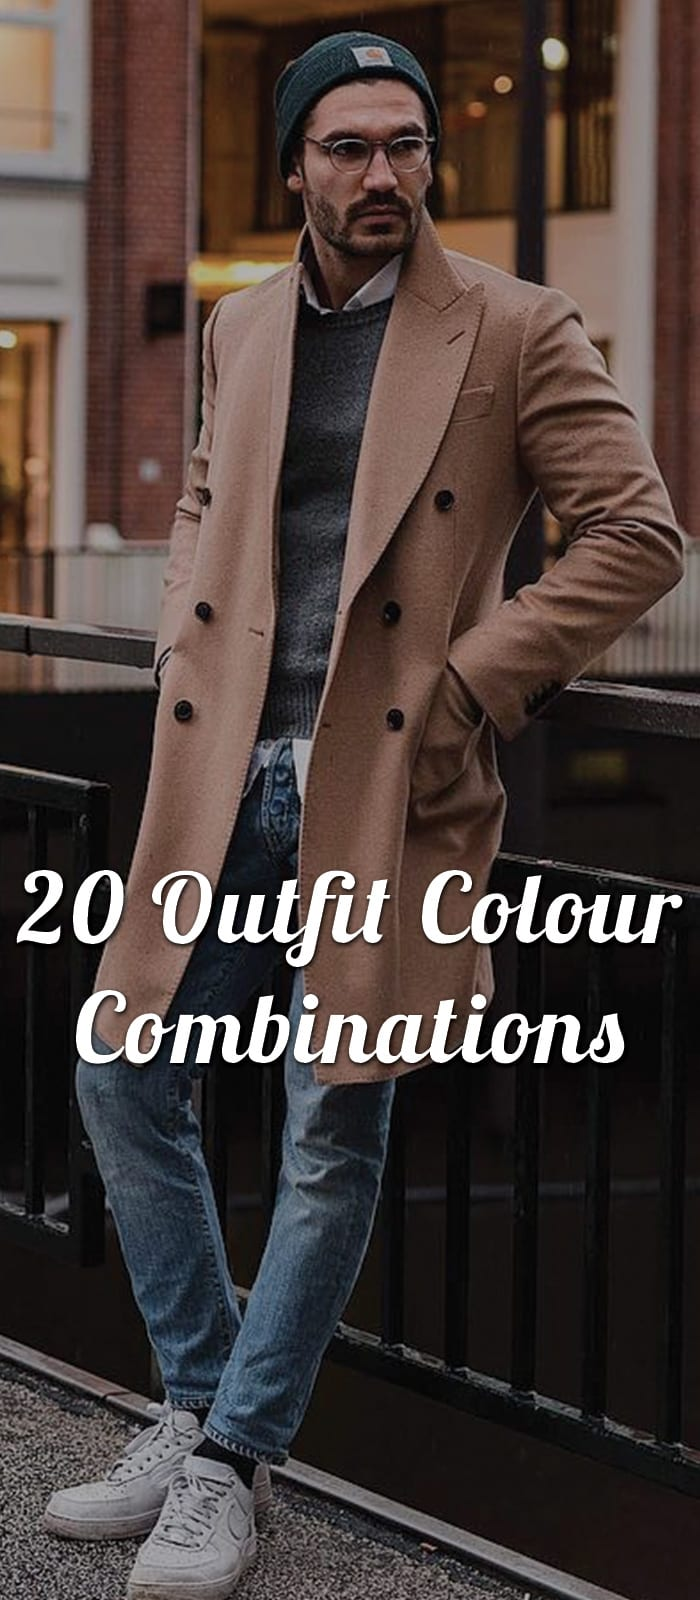 Outfit-Colour-Combinations